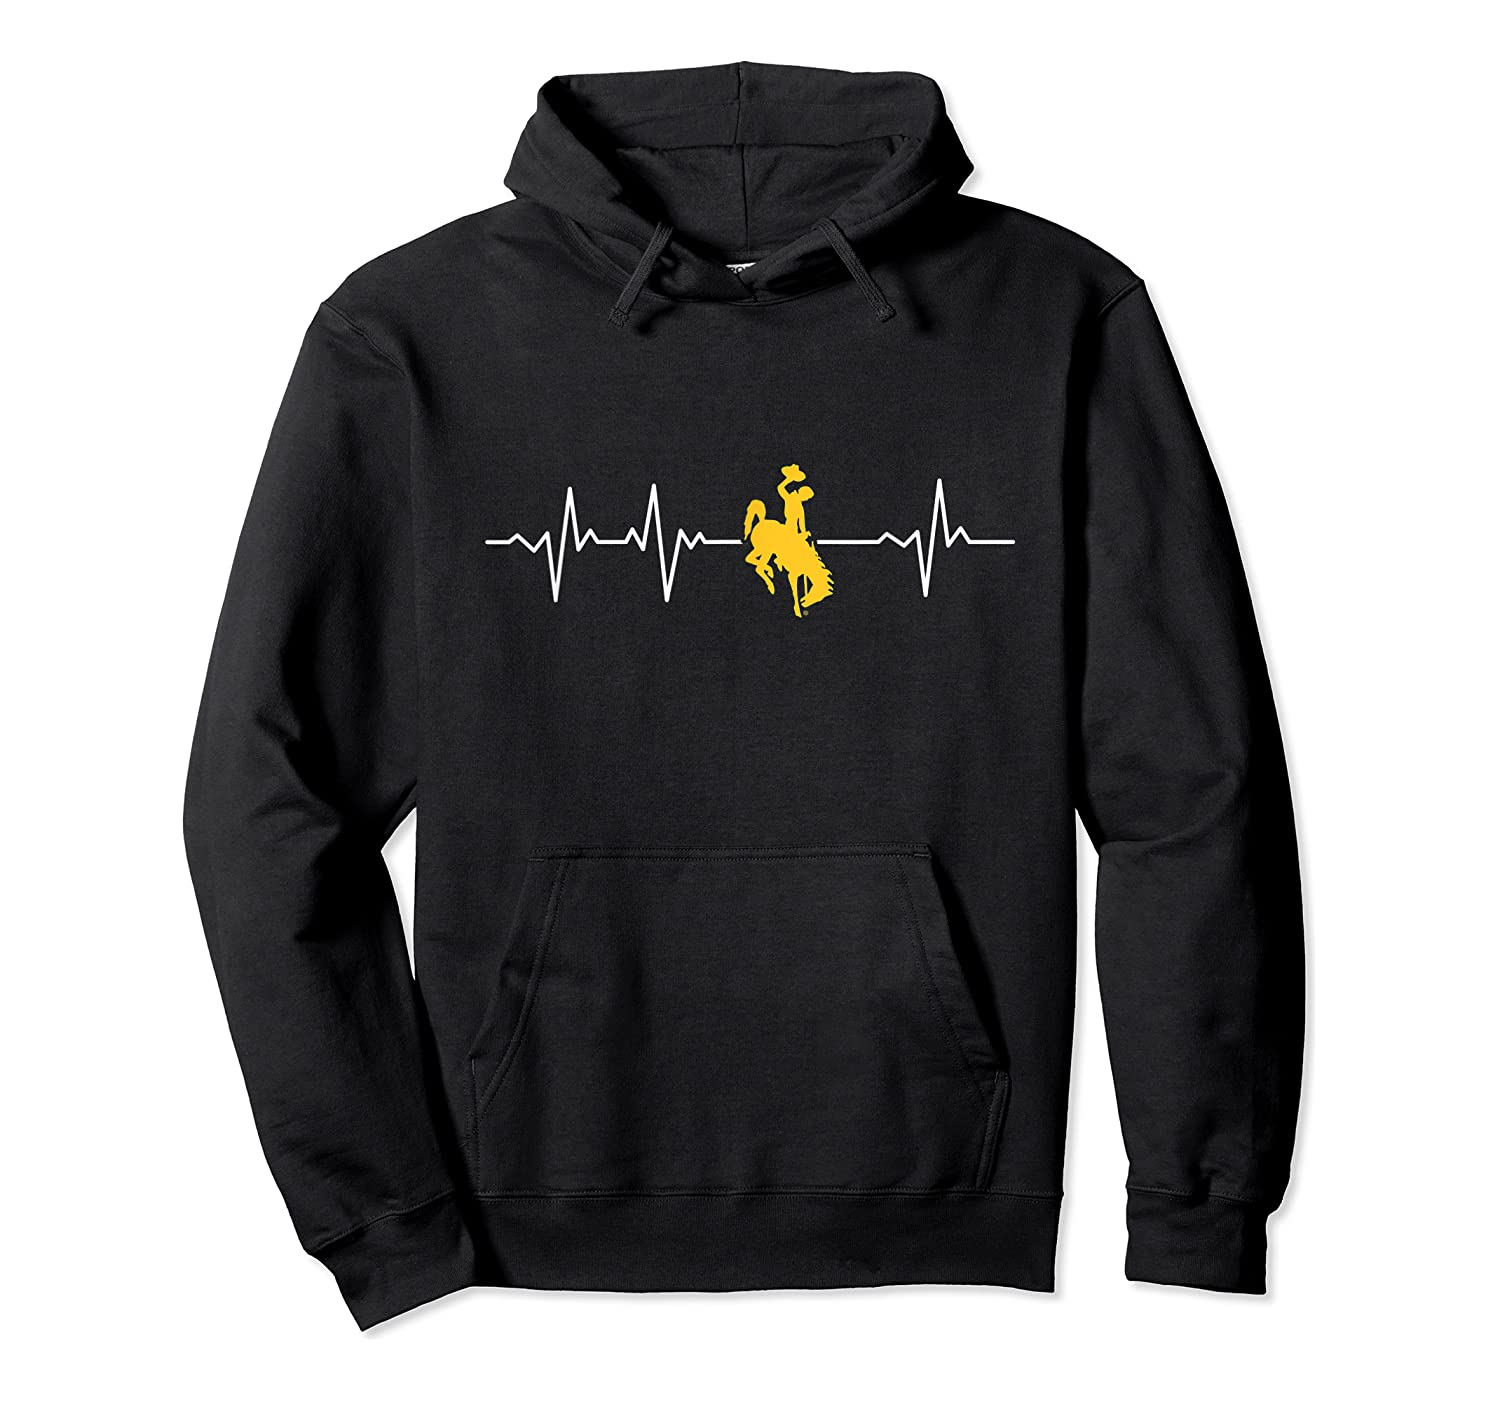 Wing Cow 051 Heartbeat T-shirt - Apparel Unisex Pullover Hoodie